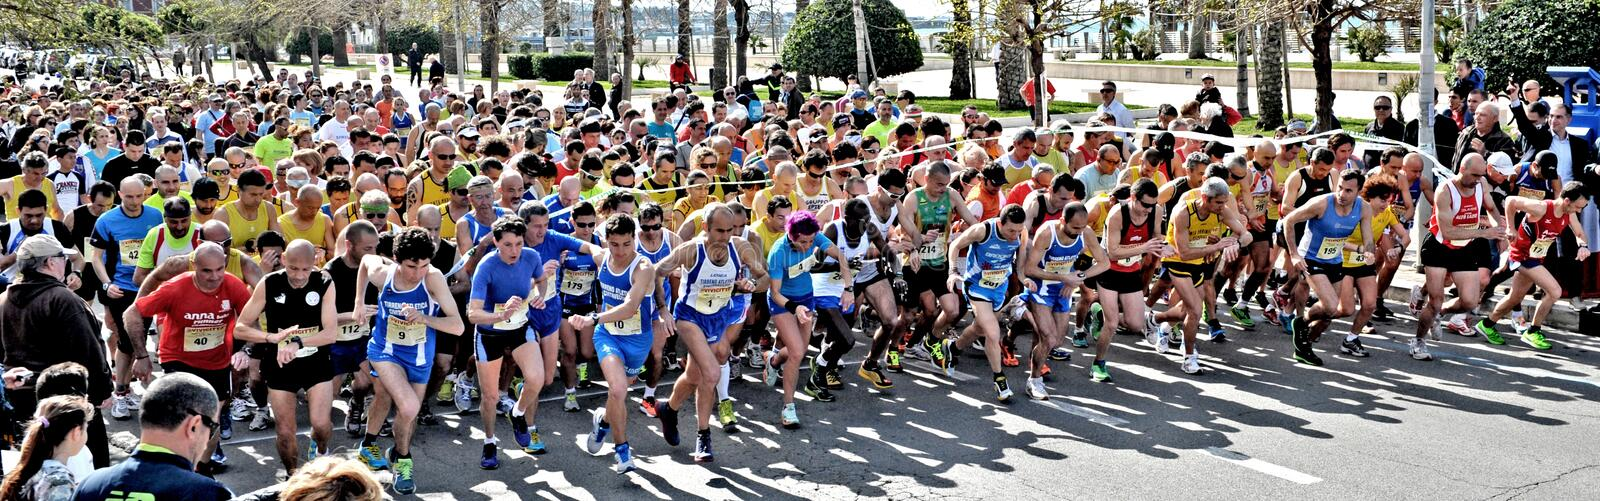 Departure for marathon racing. Civitavecchia rome italy departure racing running vivicittà. It started in 1983 and since then it has not stopped. The `biggest stock photo